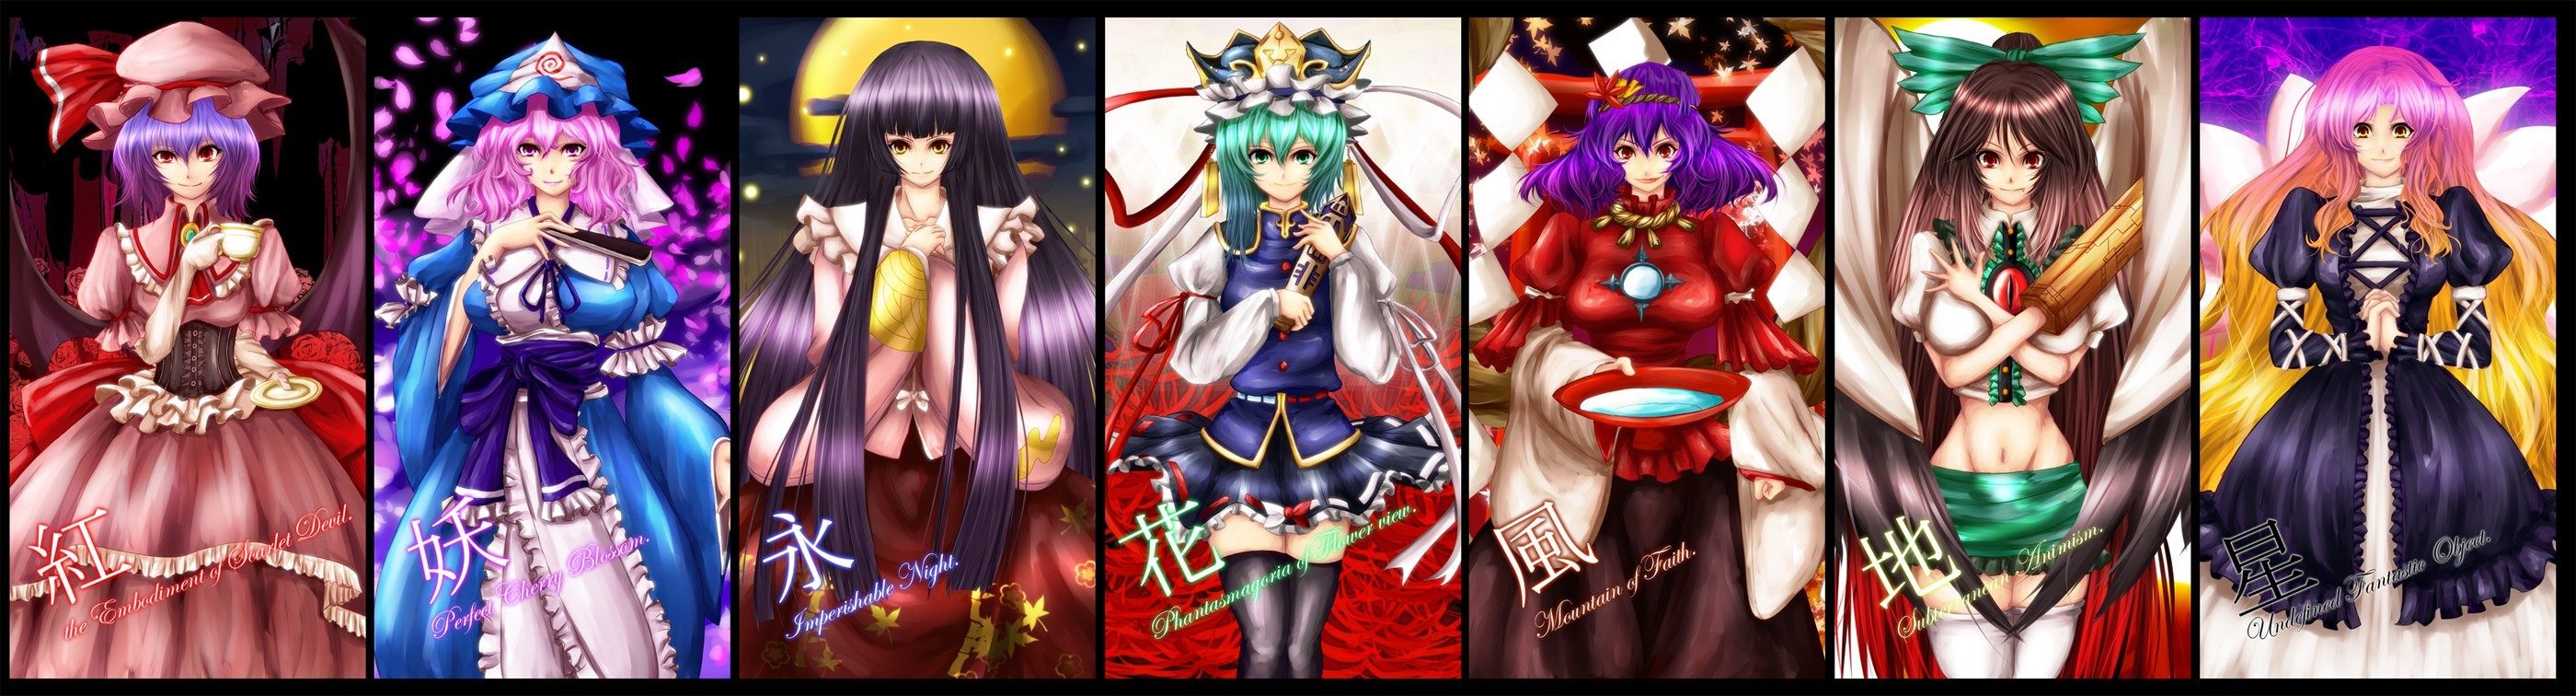 touhou goddess Vampires houraisan HD Wallpaper